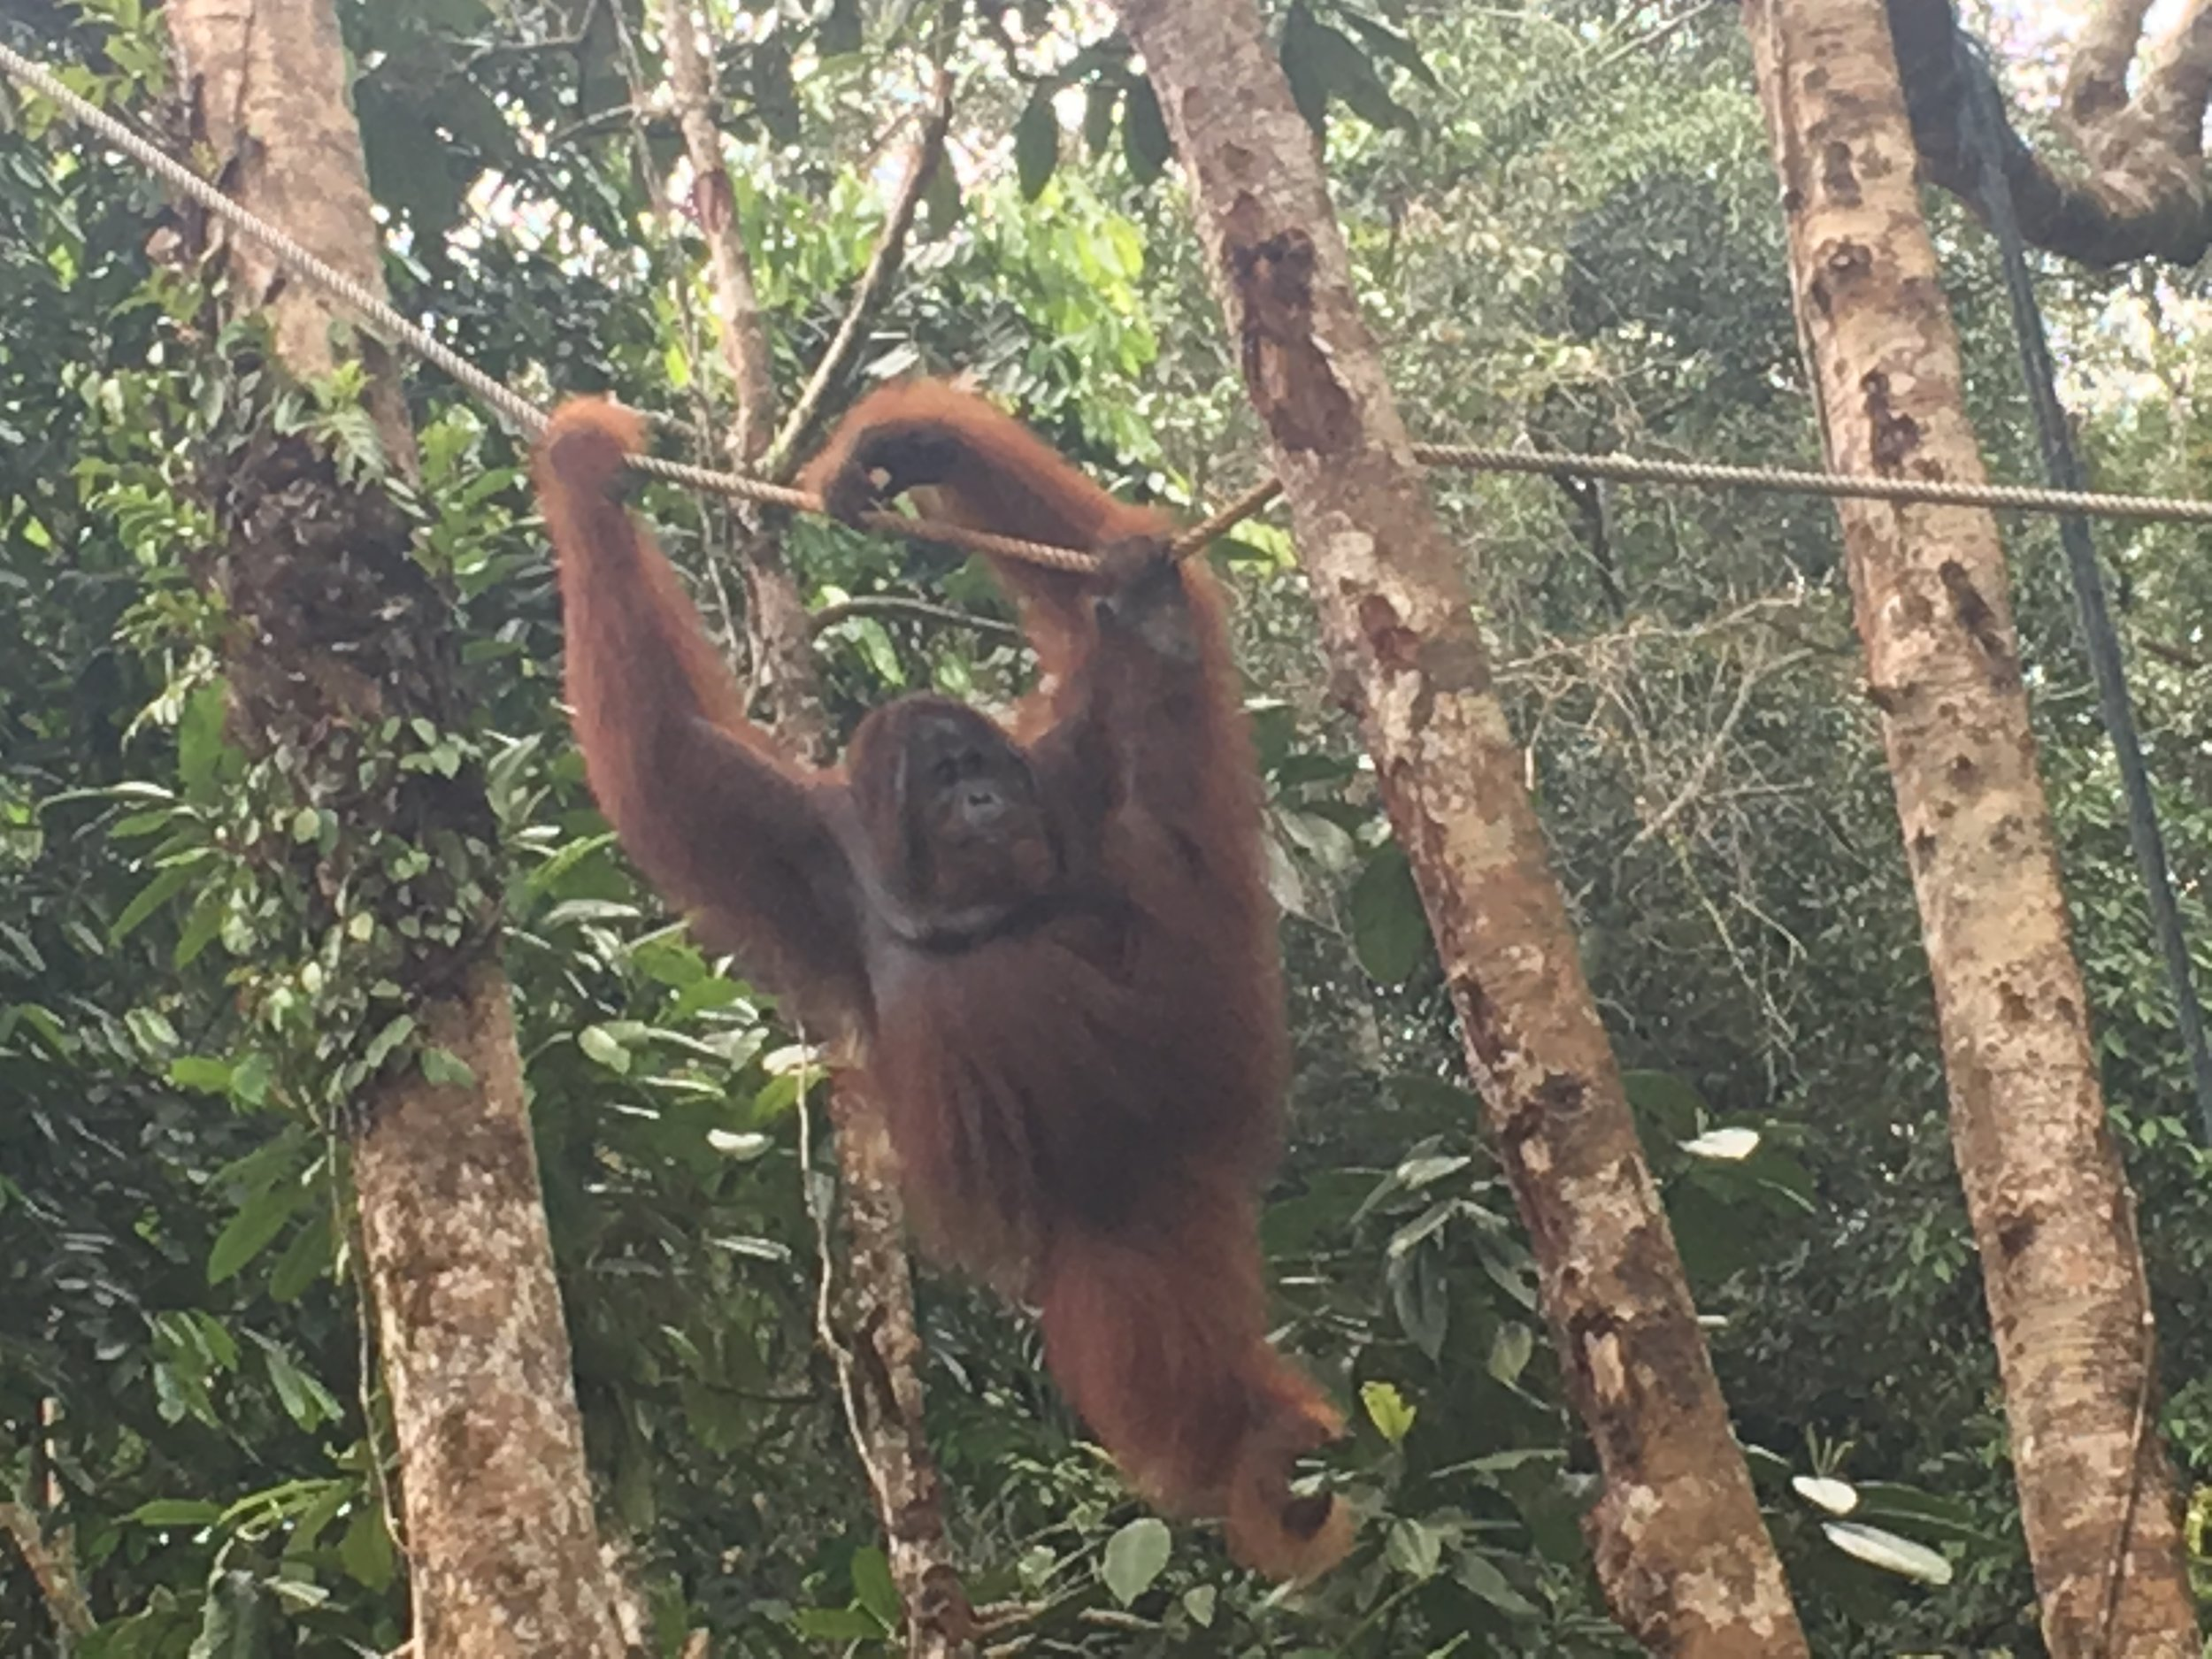 If you ever have the chance to visit an orangutan sanctuary, you definitely should go.  I could watch these guys all day.  I was smiling ear to ear the whole visit.  Please do your research and make sure the sanctuary you choose is ethically responsible, like the Semmengoh Wildlife Center in Borneo, Malaysia.